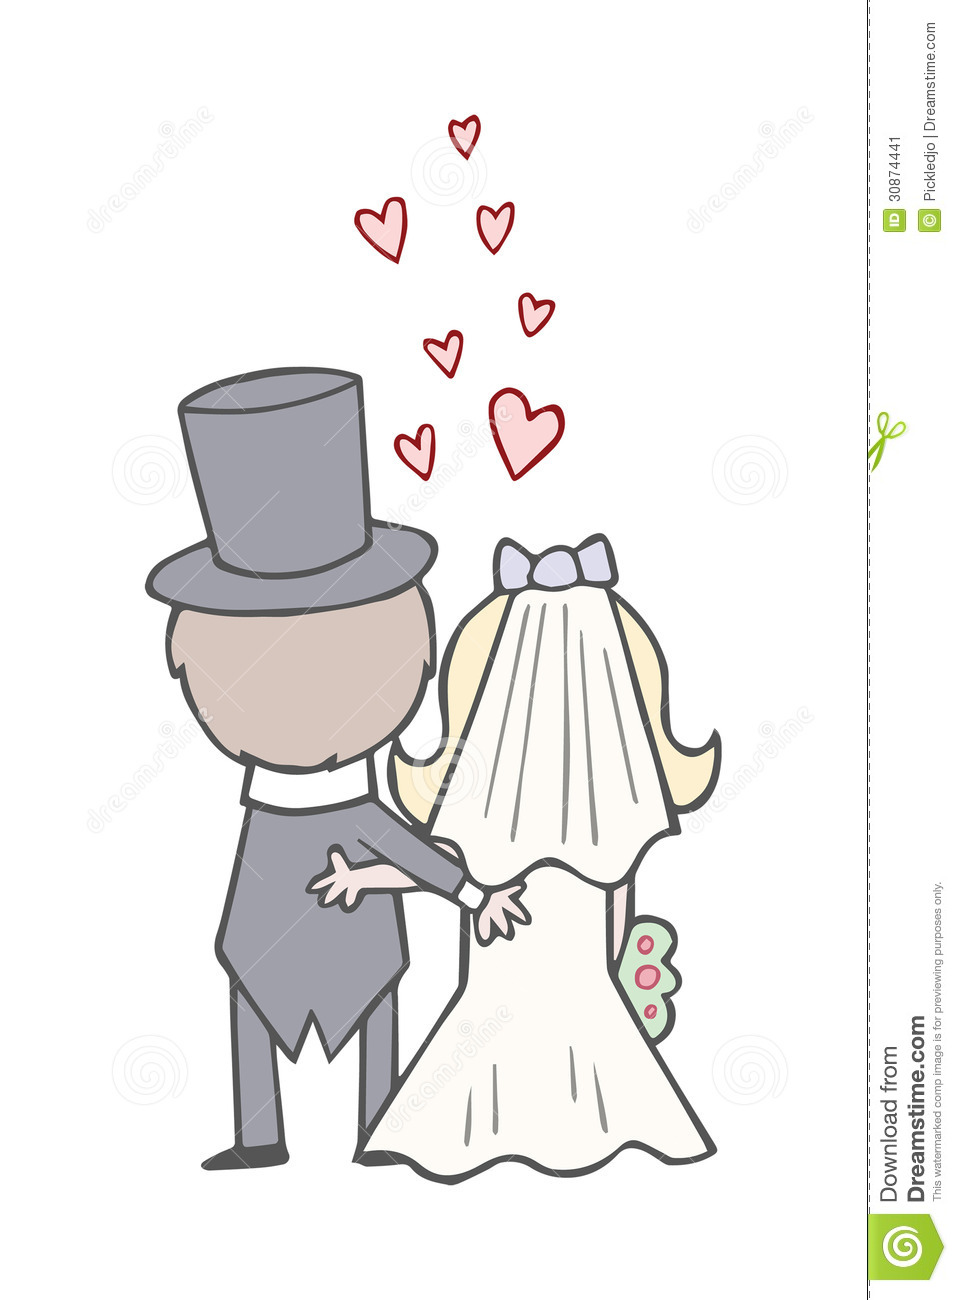 Bride clipart wedding day Bride Clipart clipart Cartoon and